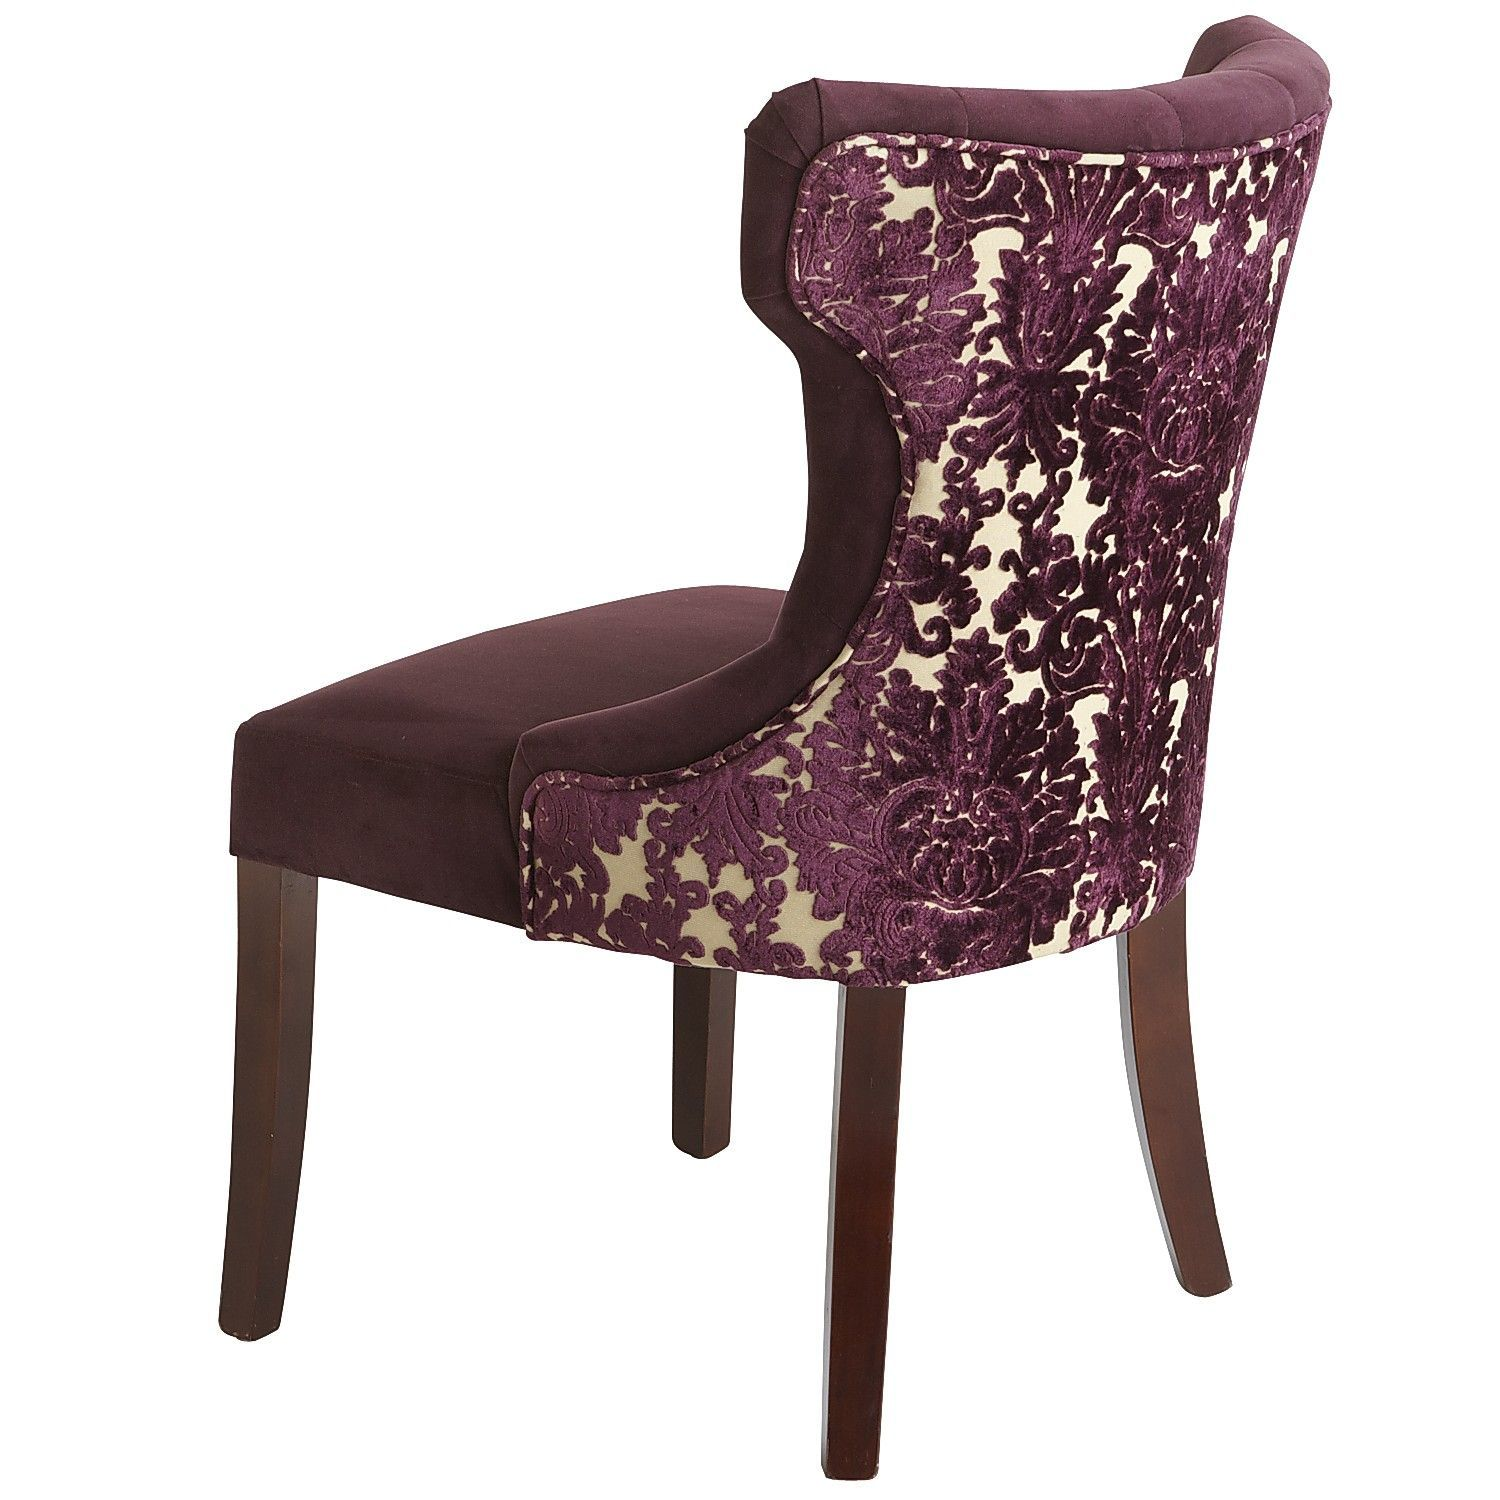 Getting these chairs for the dining room. The color